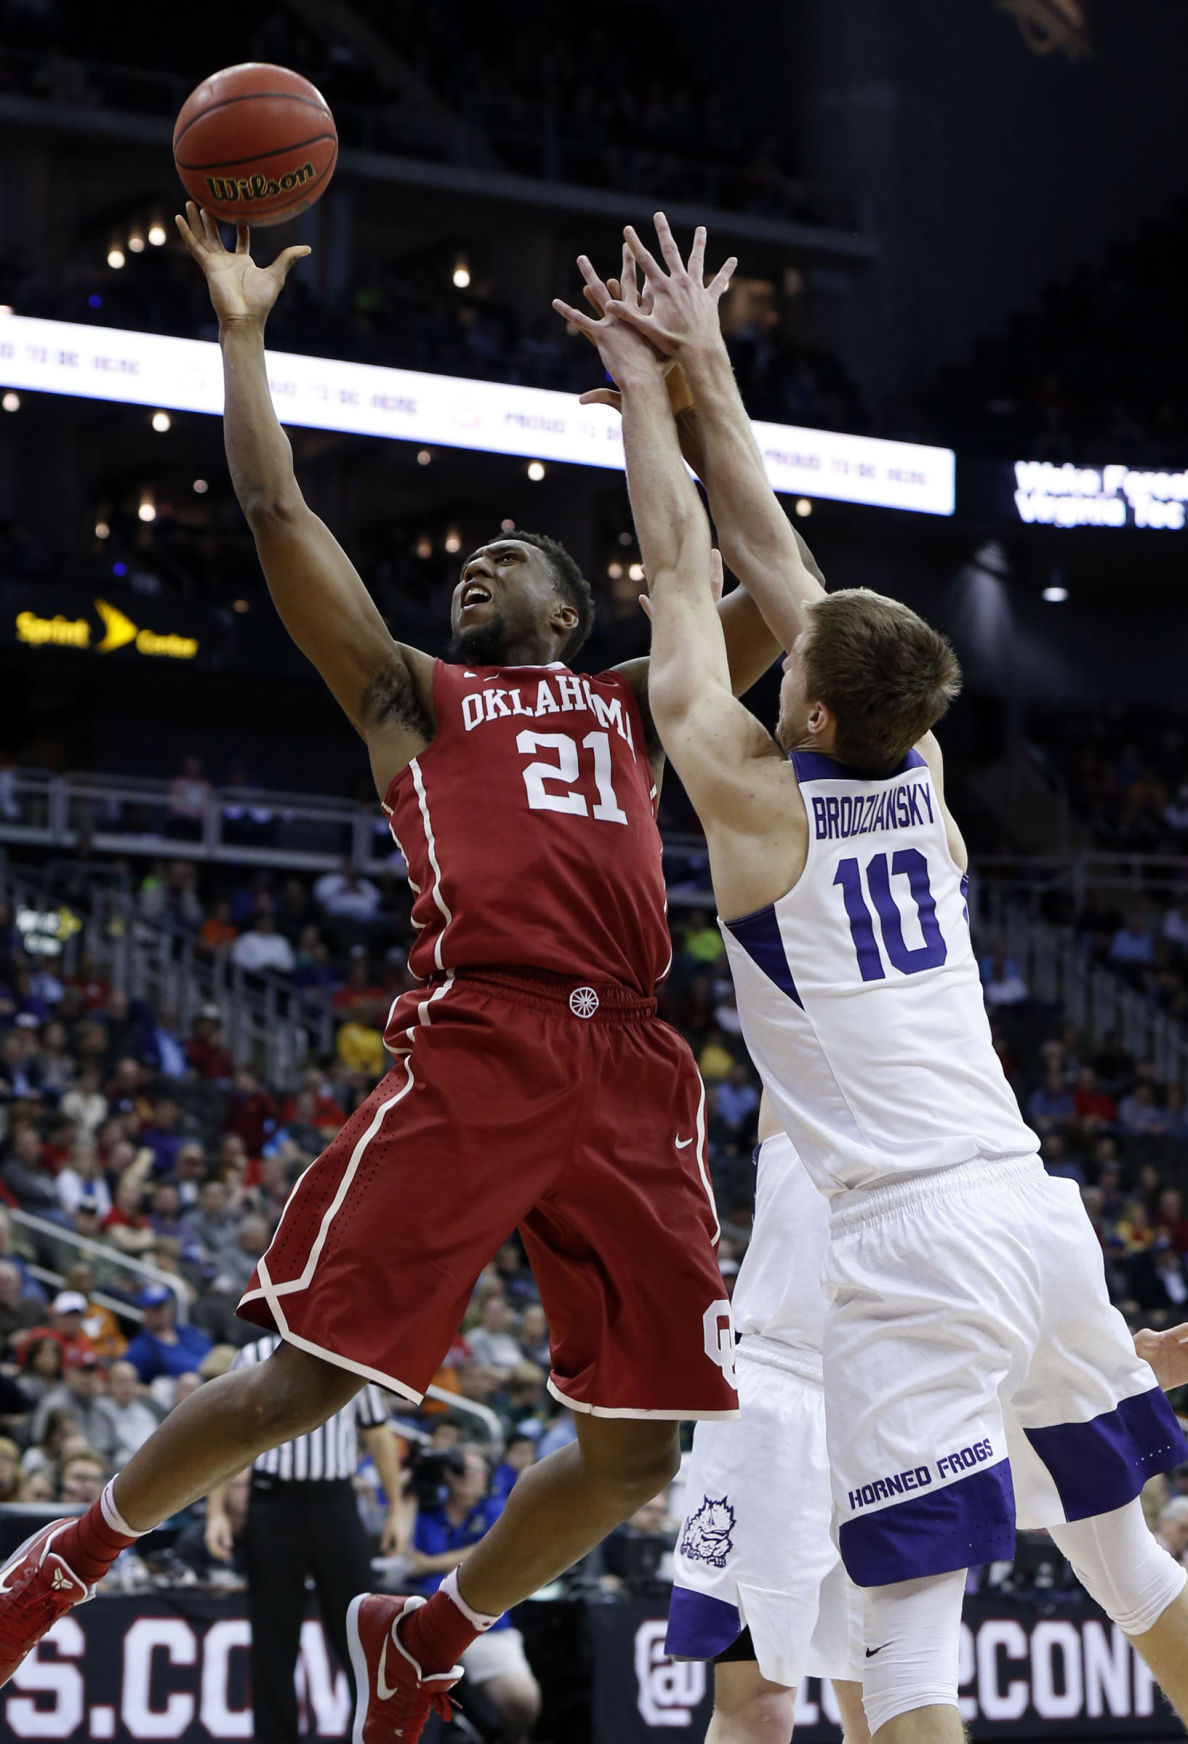 OU basketball: Dante Buford, Darrion Strong-Moore will